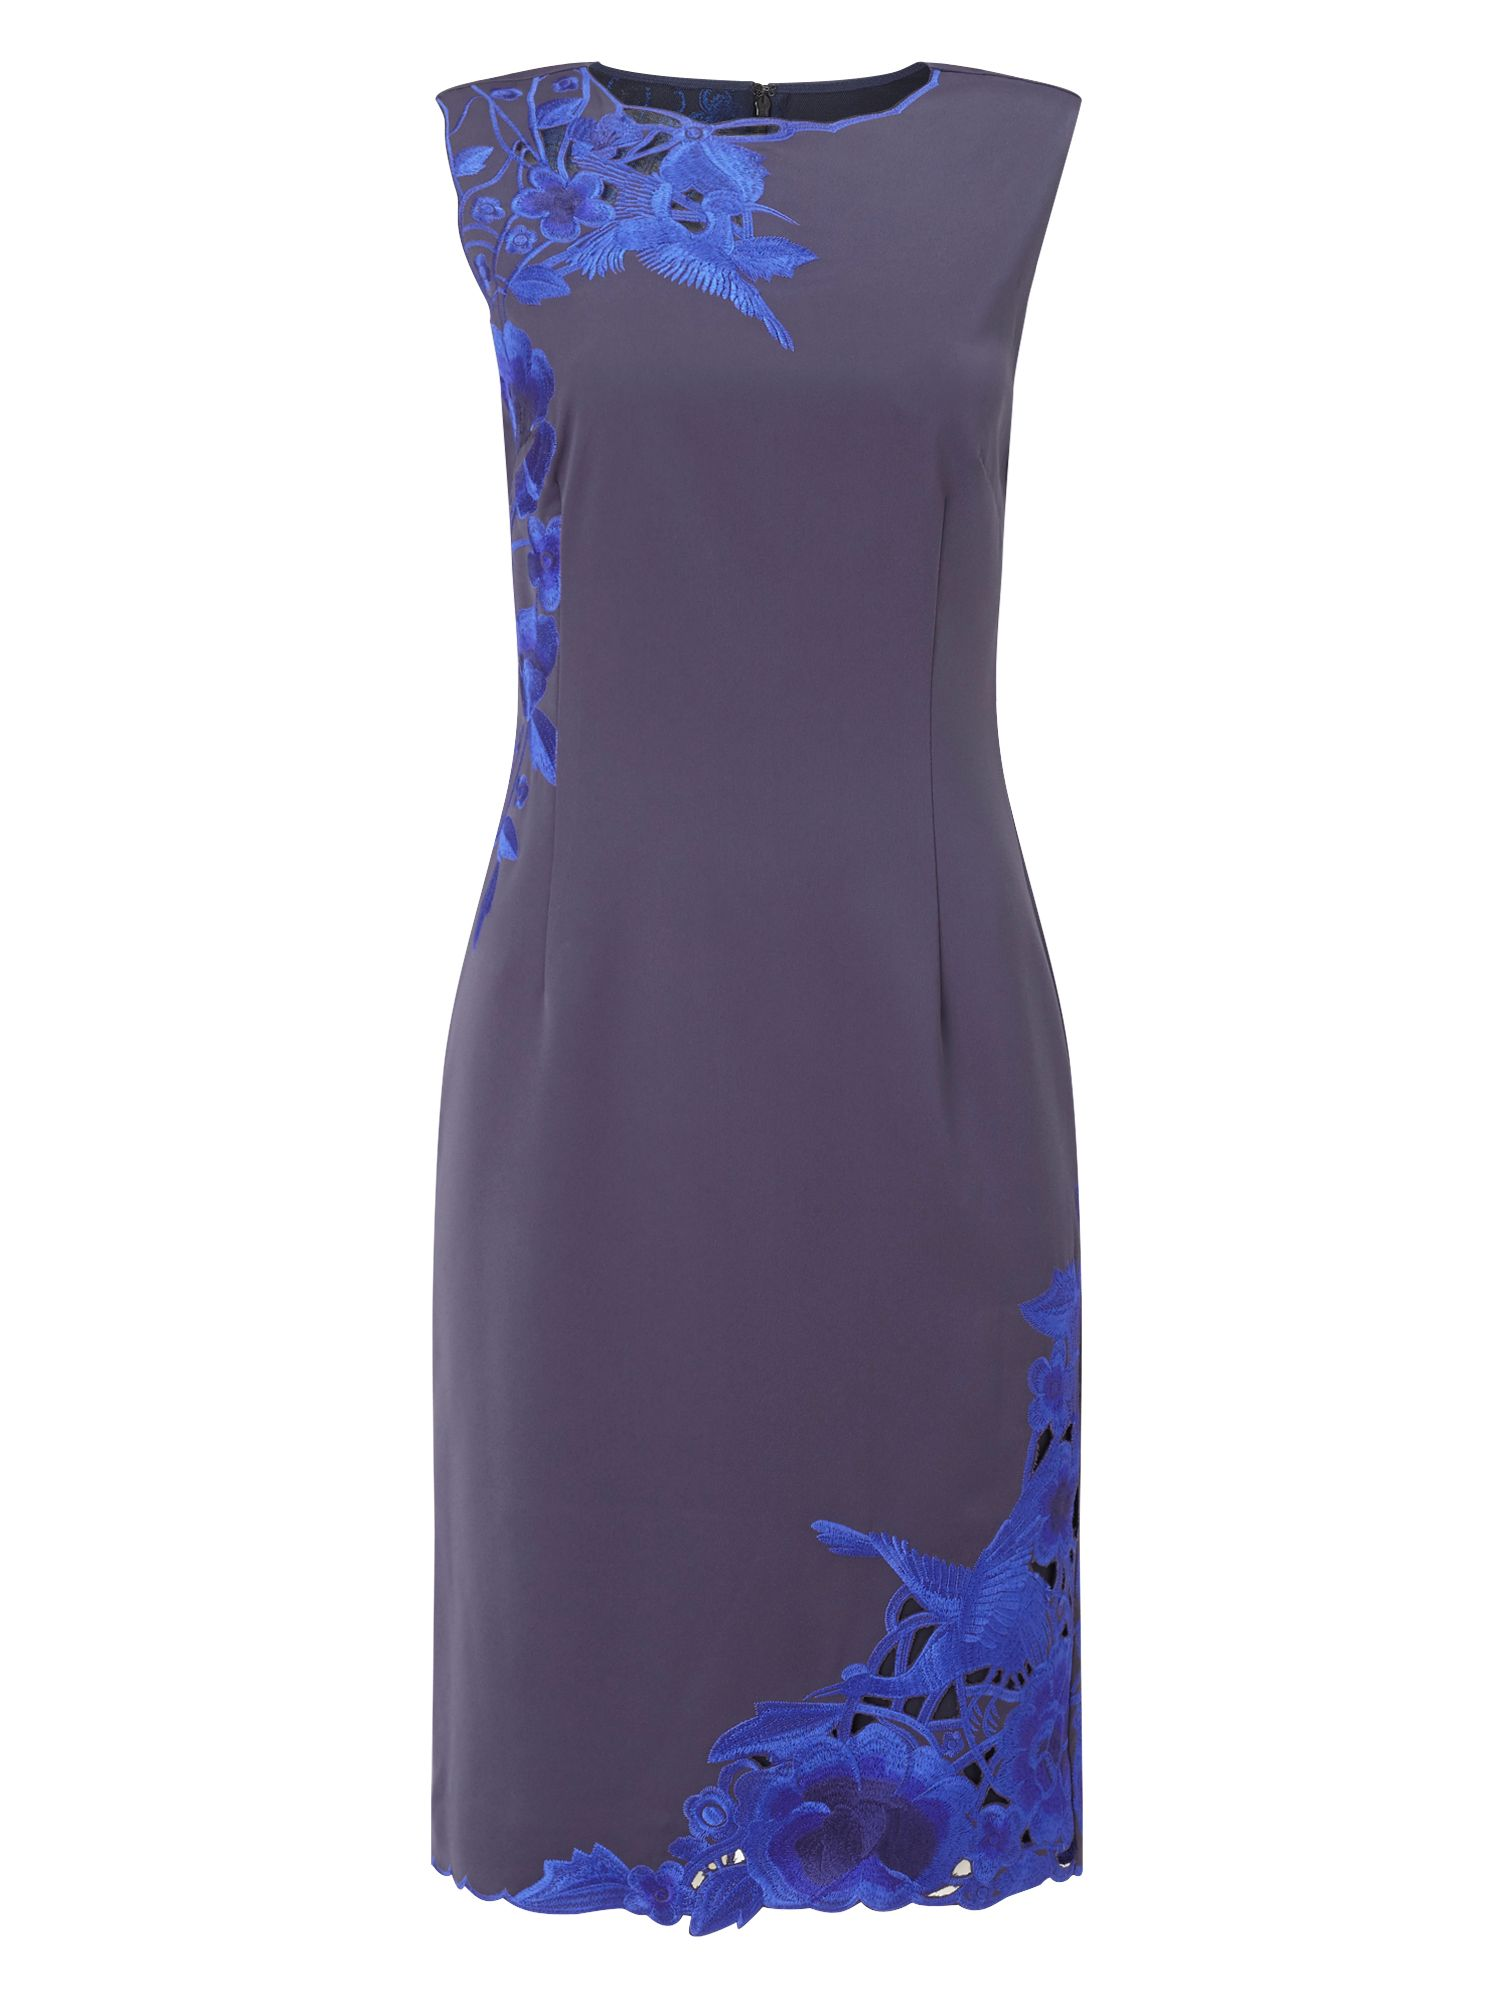 Precis Petite Petite Navy Embroidered Dress, Blue